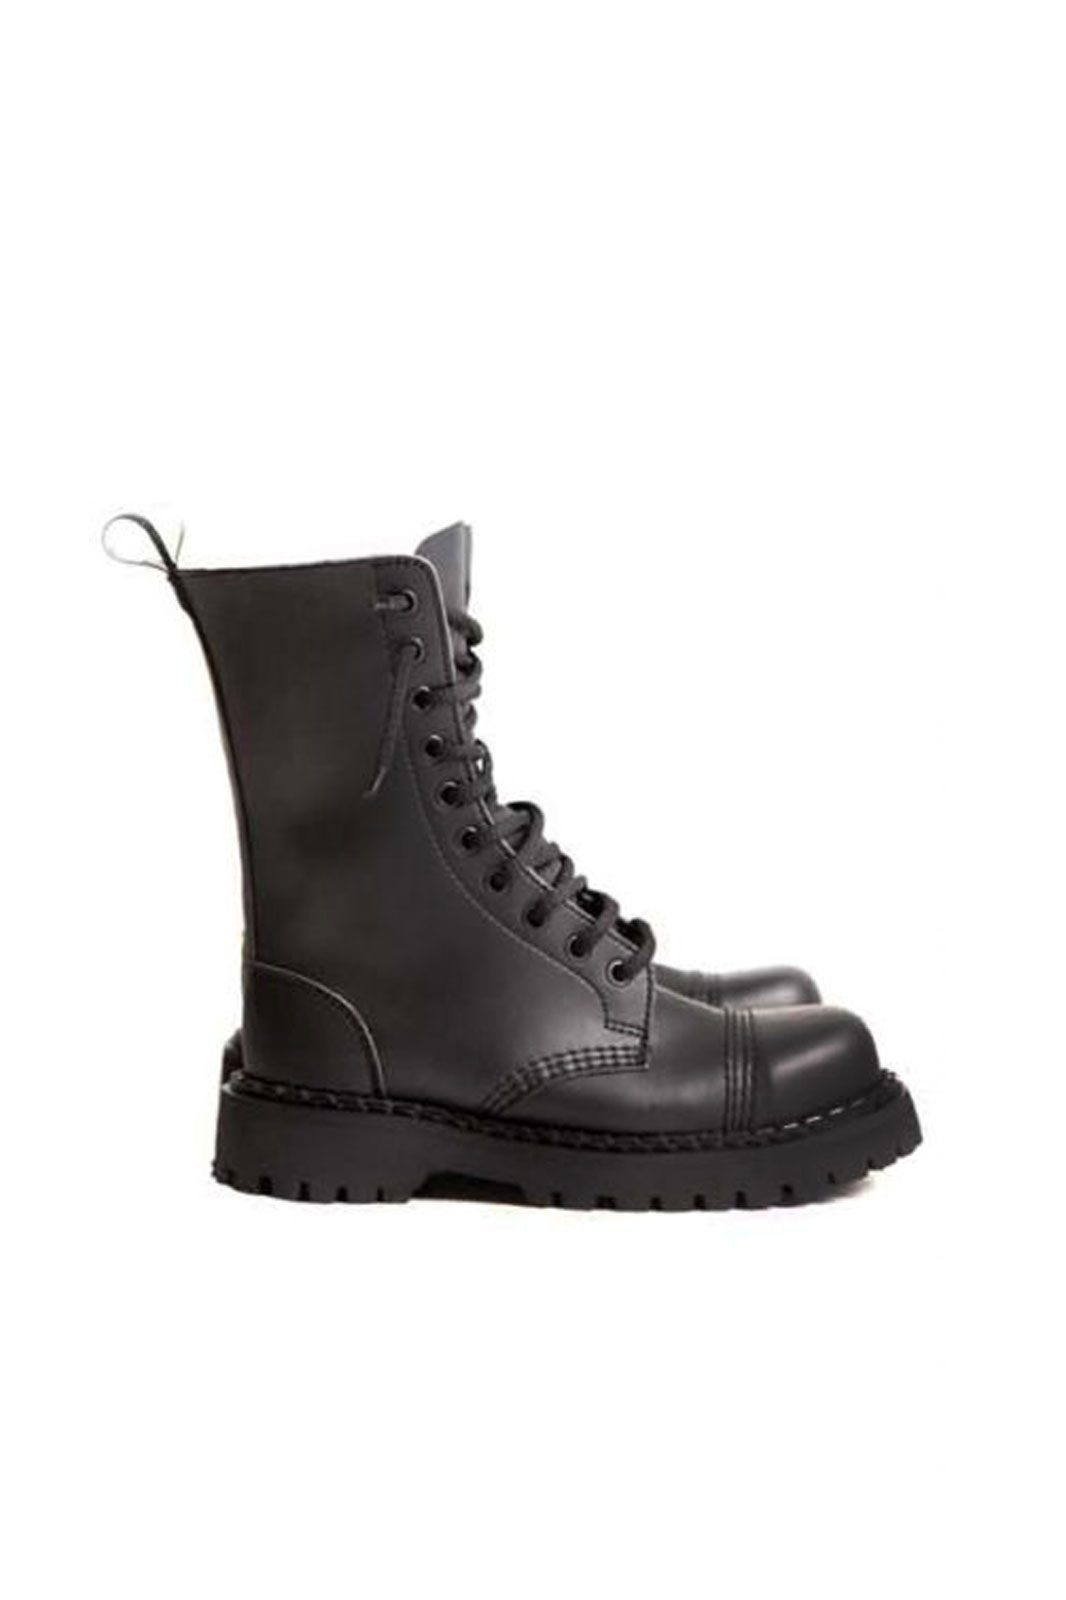 steelground 10 eye steel toe vegan boots